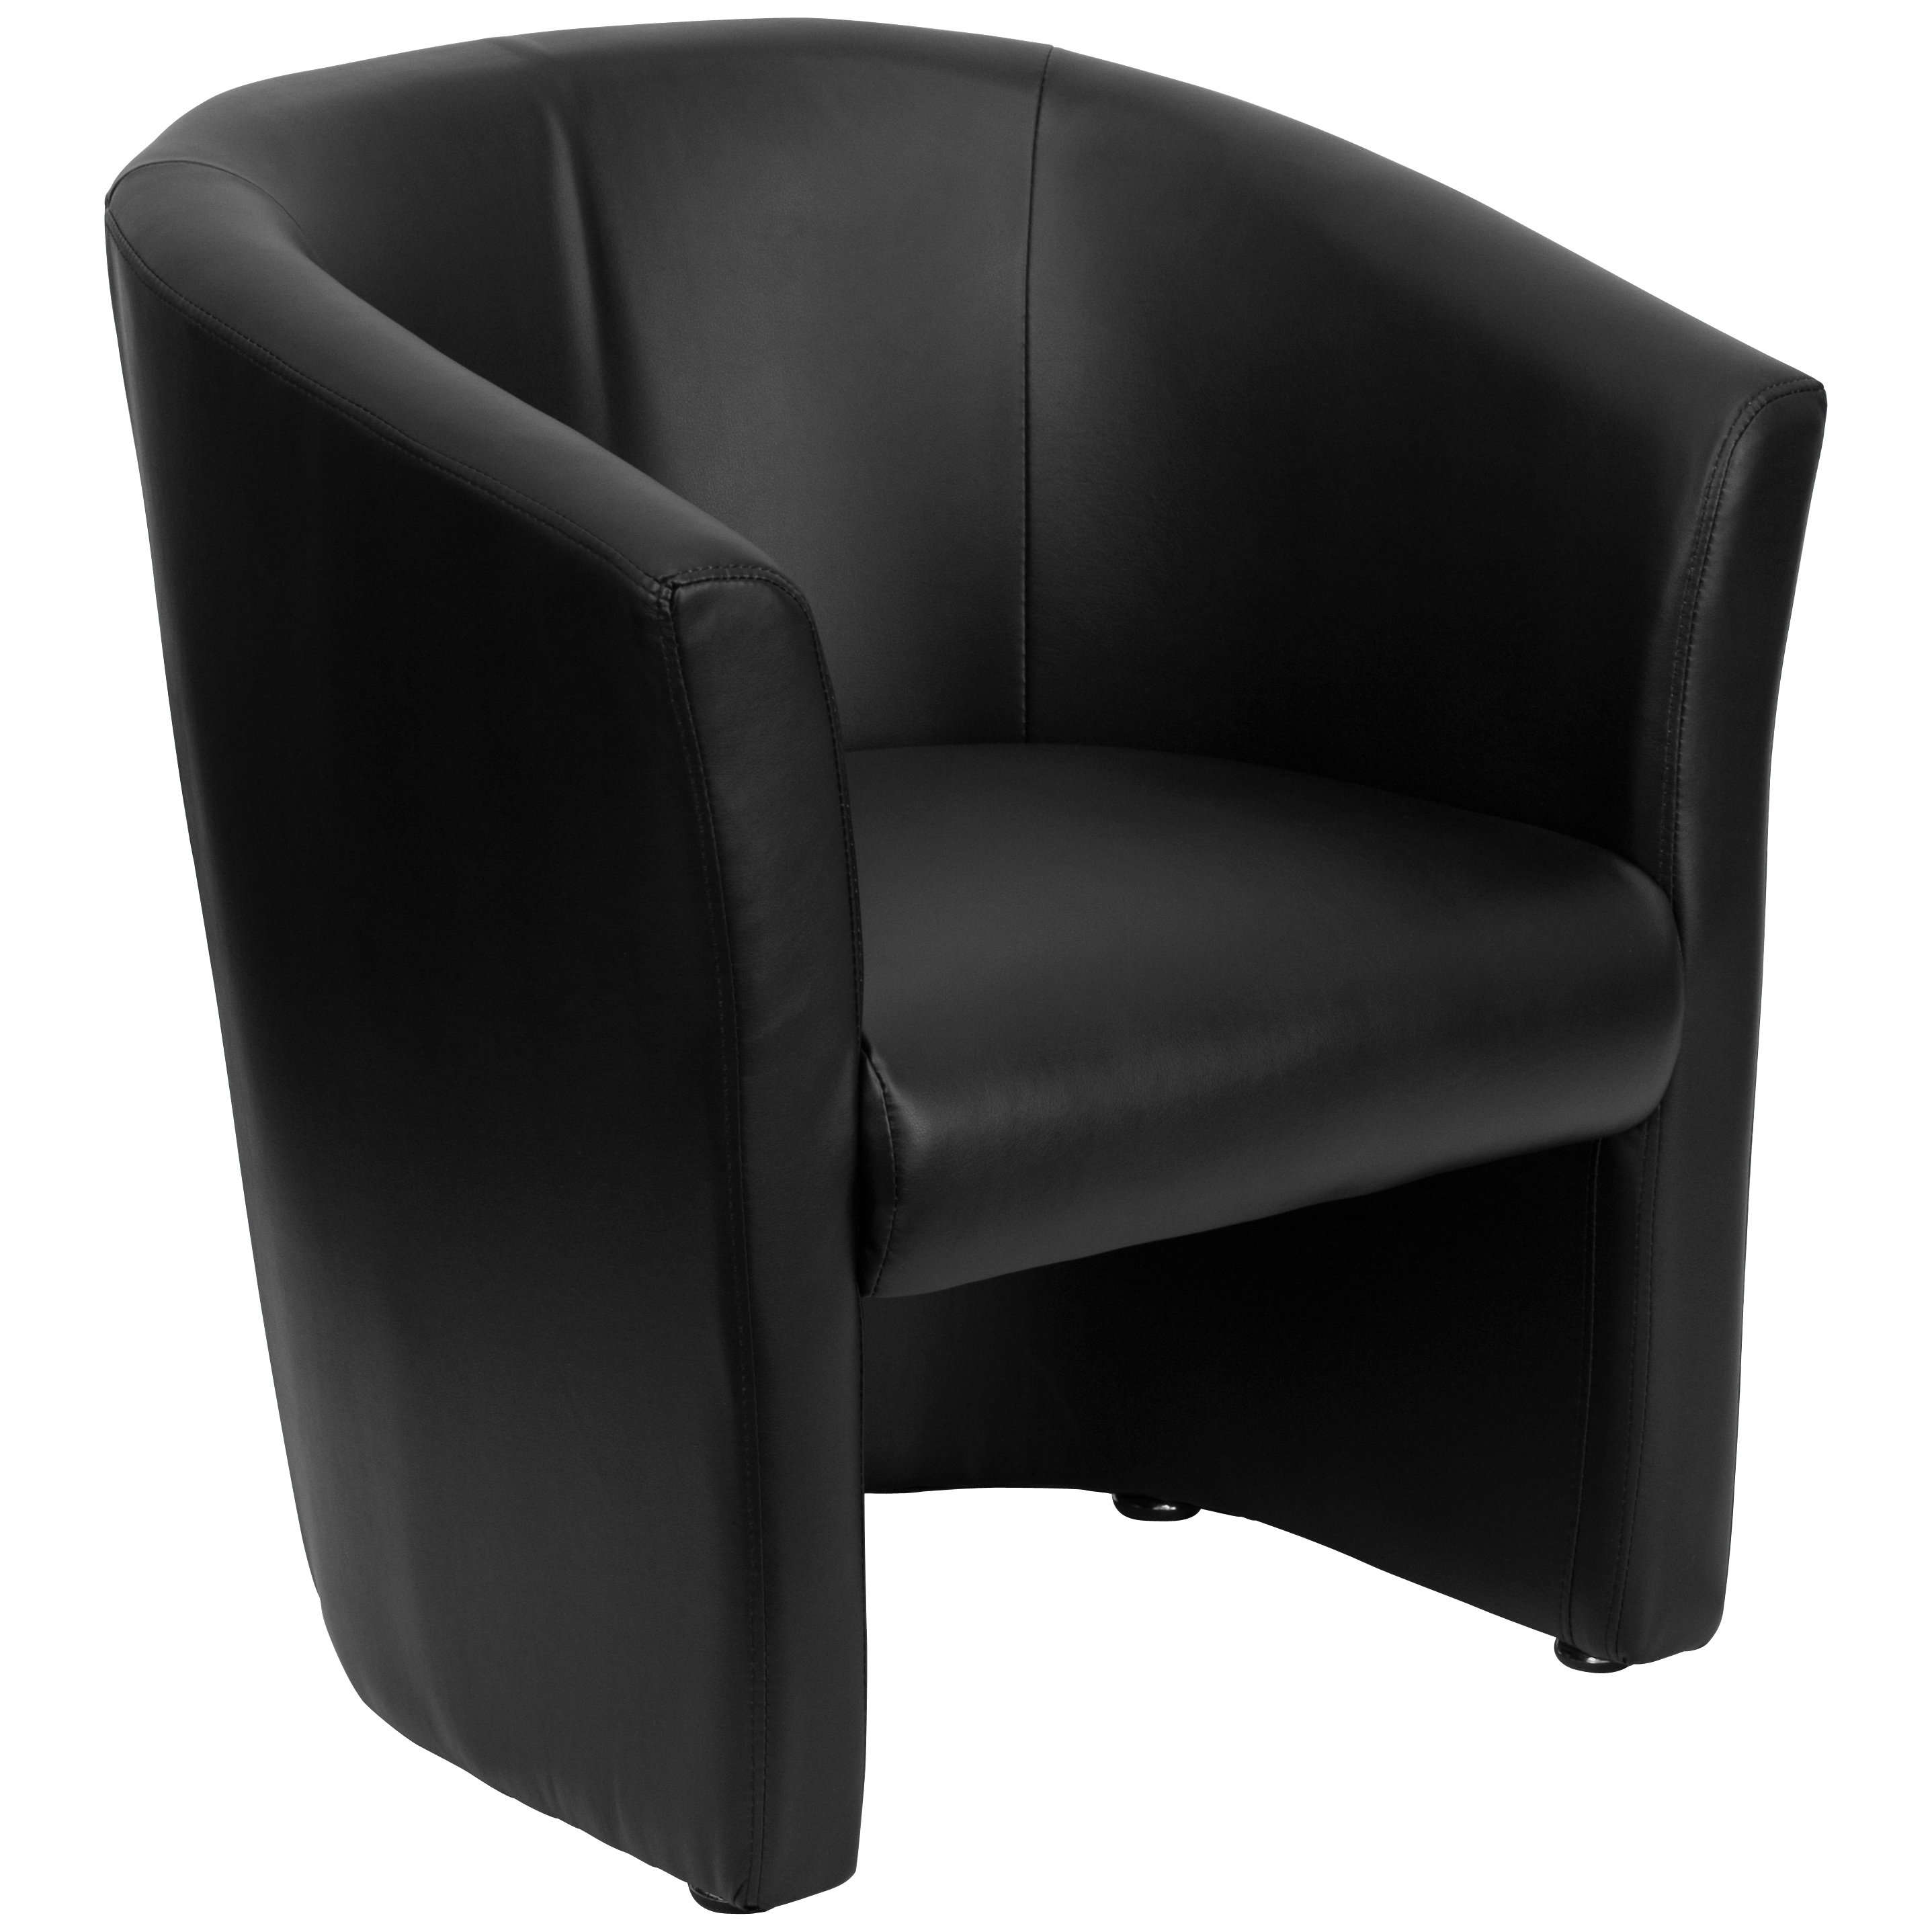 black barrel chair adirondack pads cushions flash leather shaped guest by oj